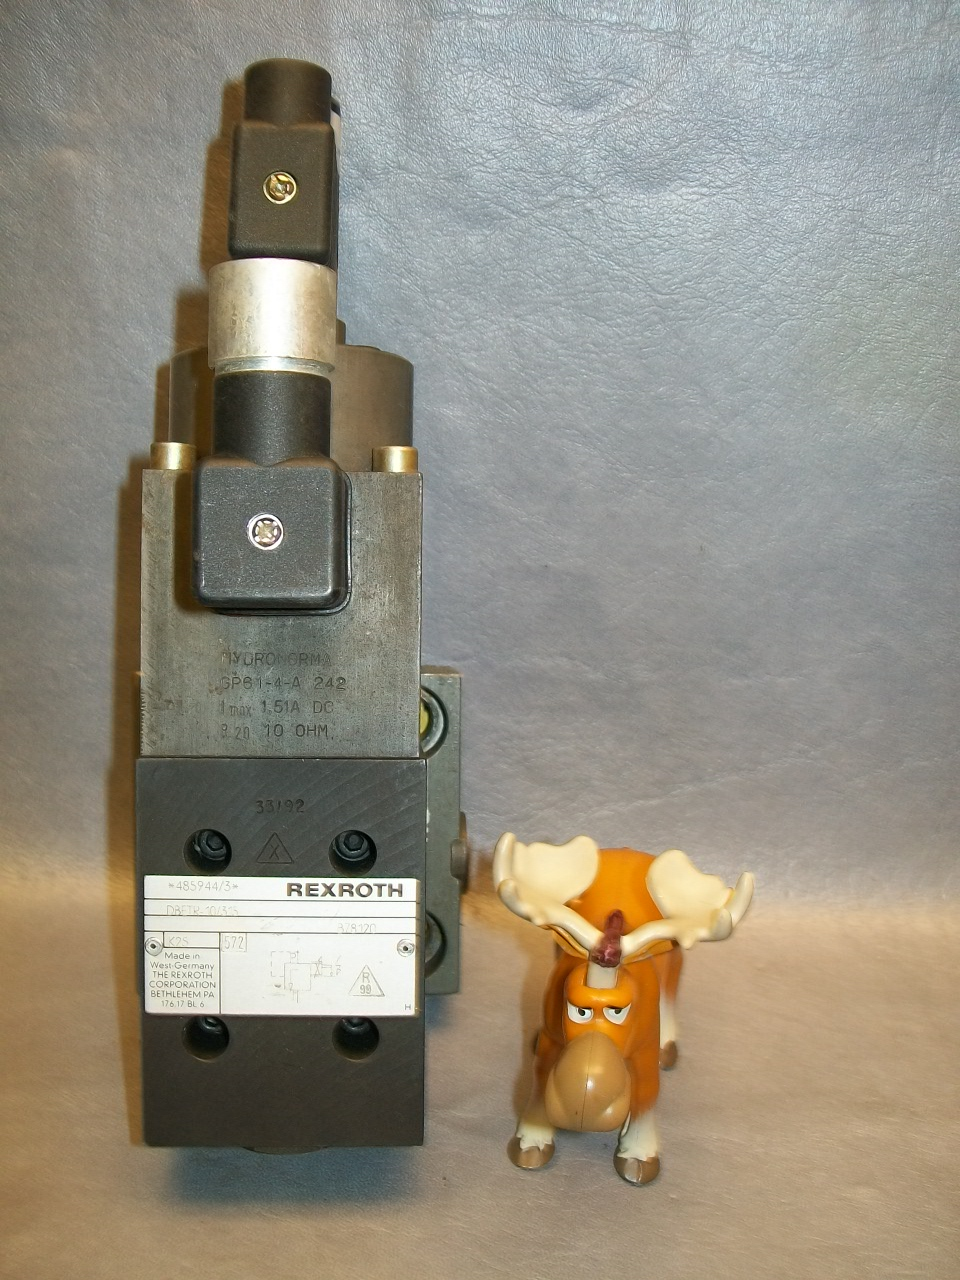 medium resolution of rexroth lfa25dbemtr60 315 12 hydronorma hydraulic valve assembly